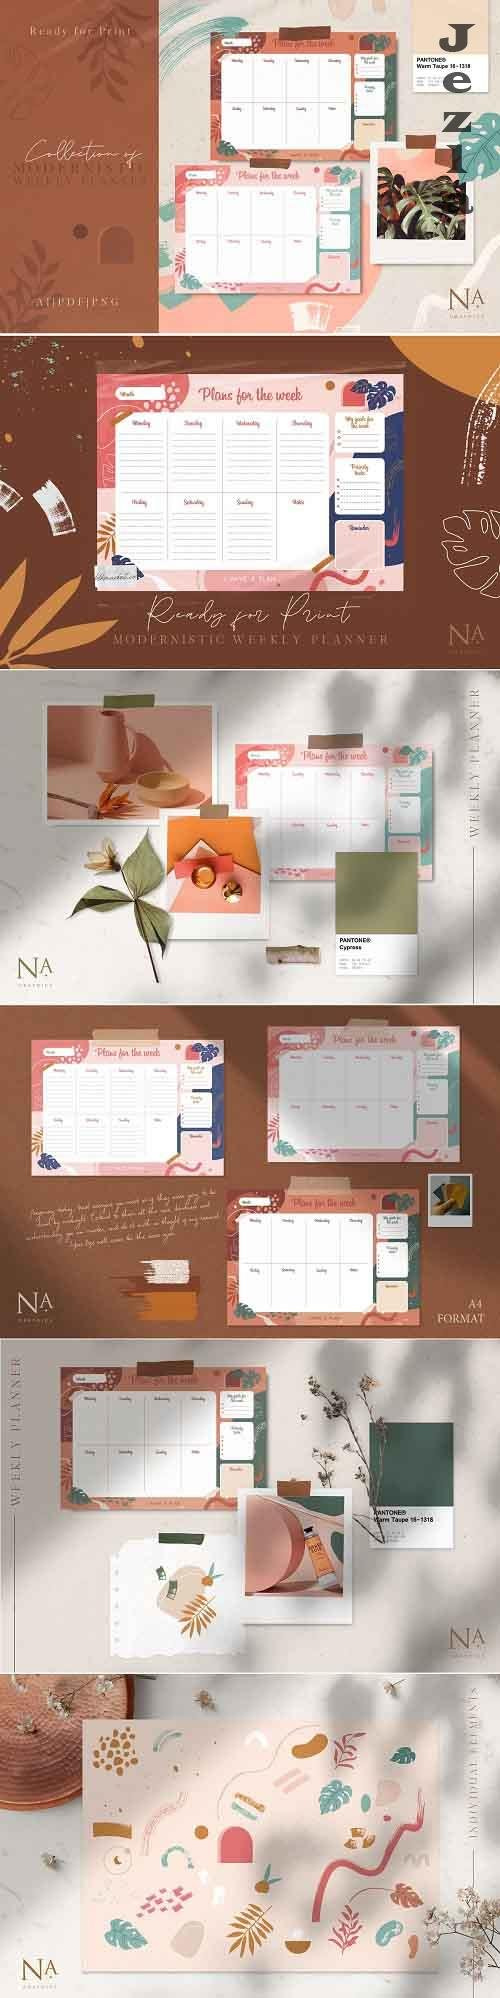 Modernistic Weekly Planner - 4341893